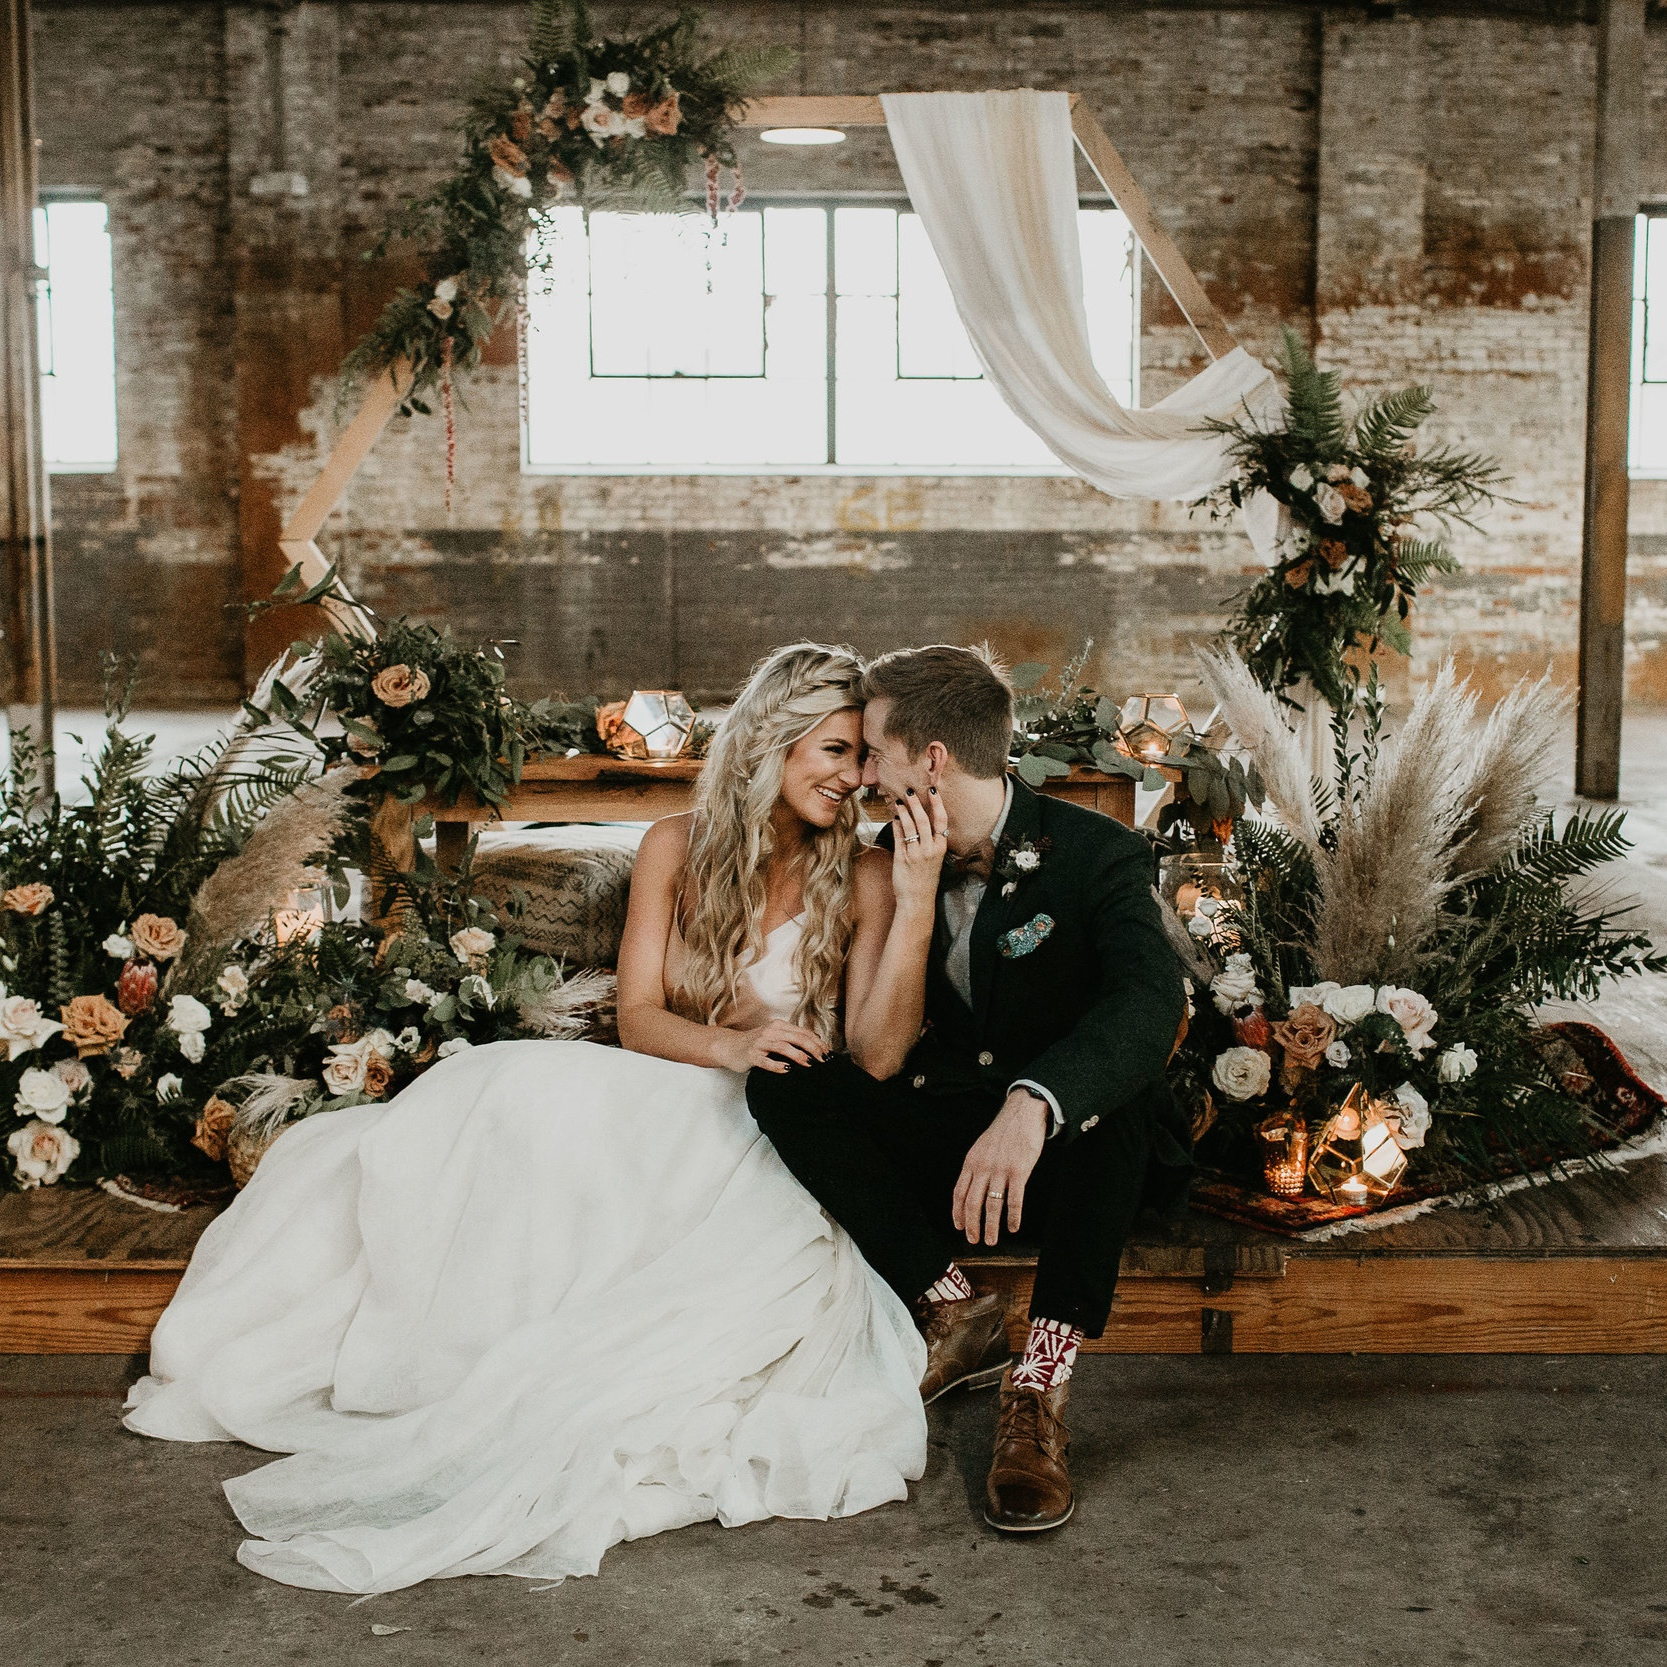 ALI + WES WEDDING AT THE GLASS FACTORY